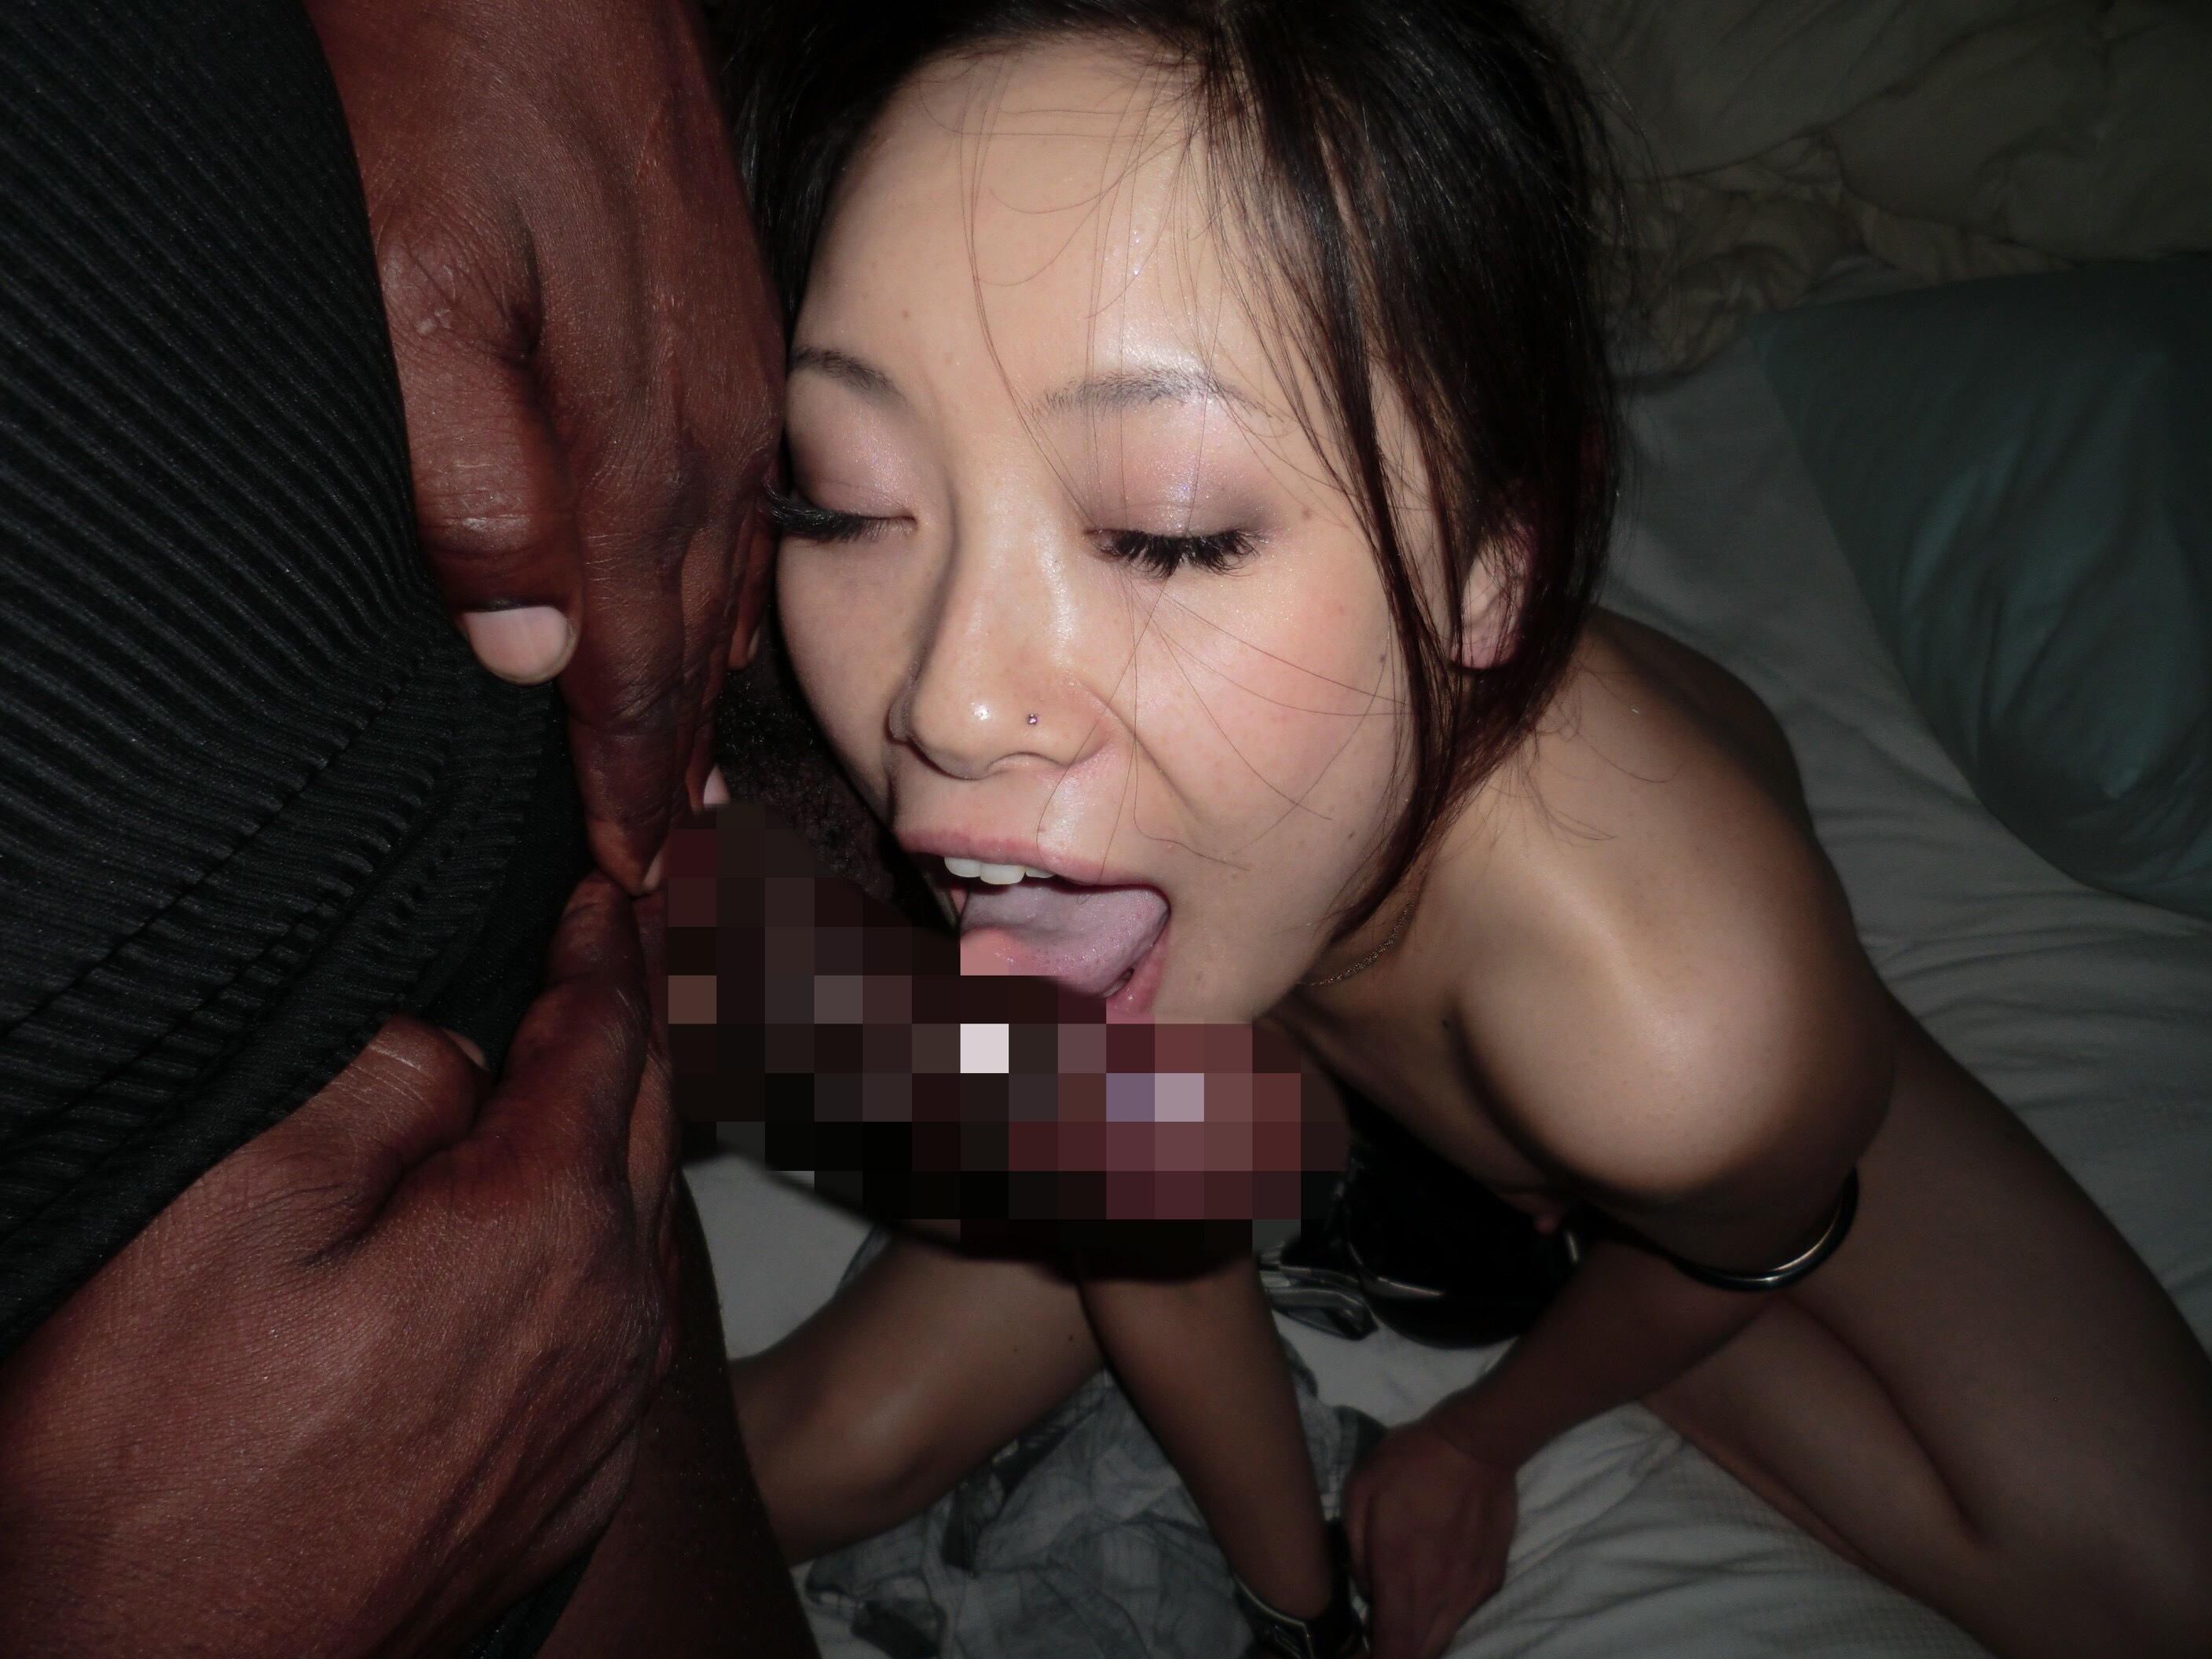 Watch Tiny Asian Destroyed By Huge Black Guy